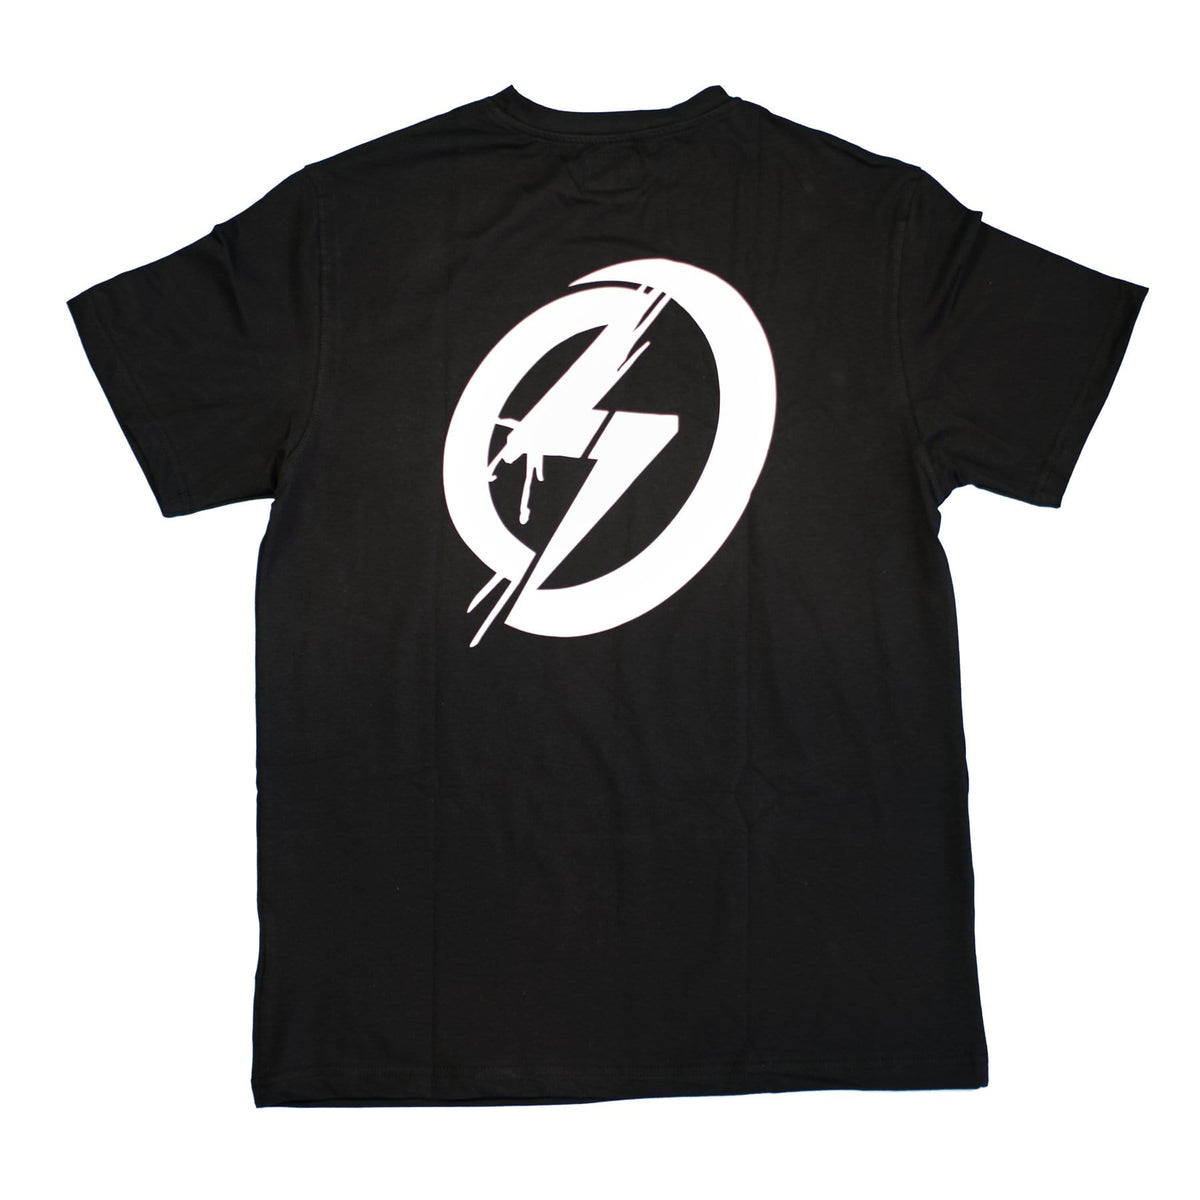 Limited Edition Reflective T-Shirt